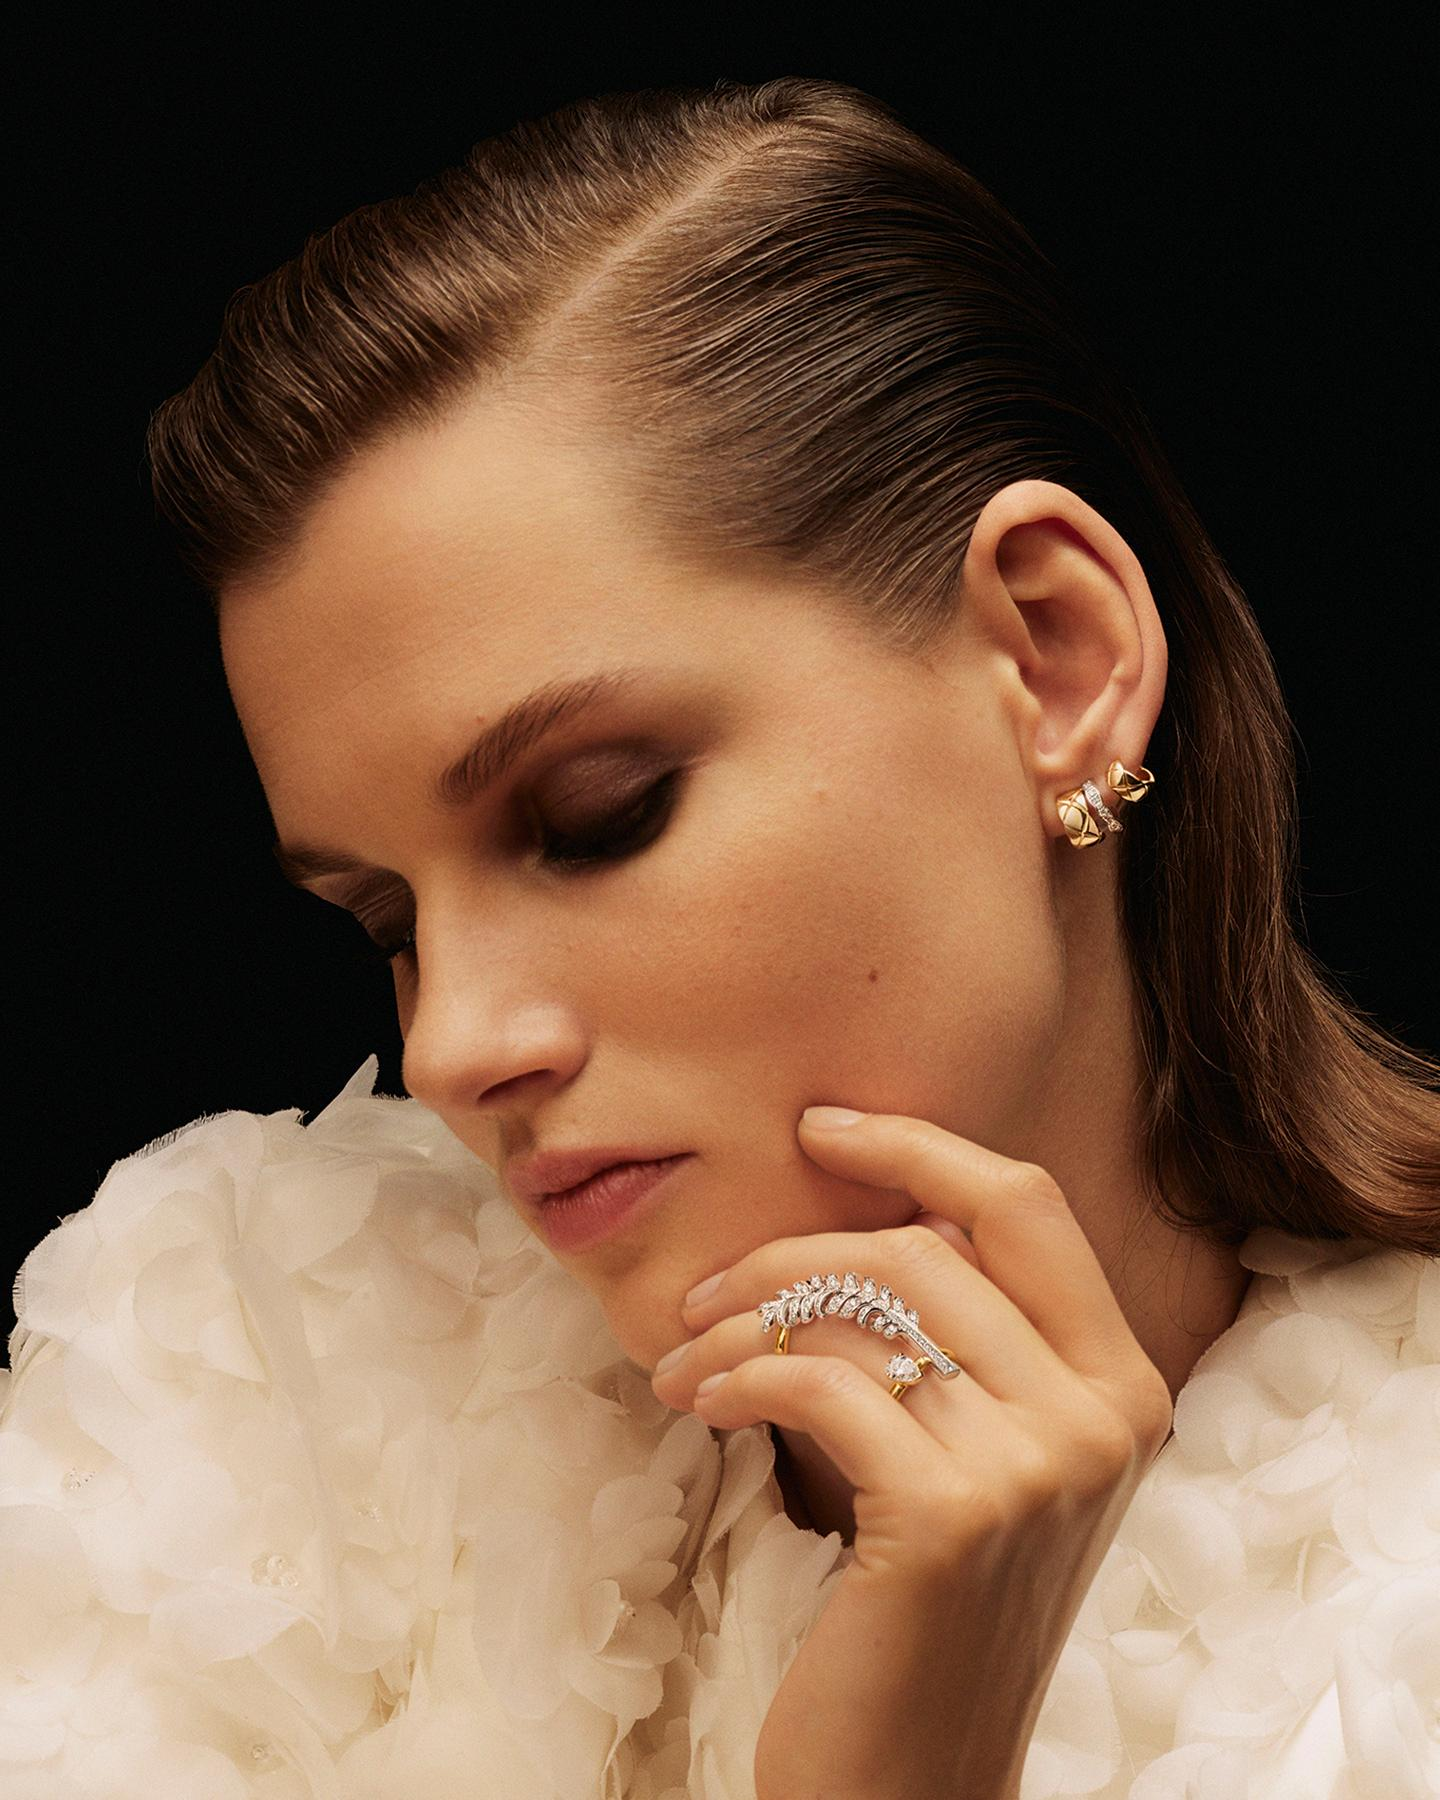 model wearing a COCO CRUSH earring and a PLUME de CHANEL ring